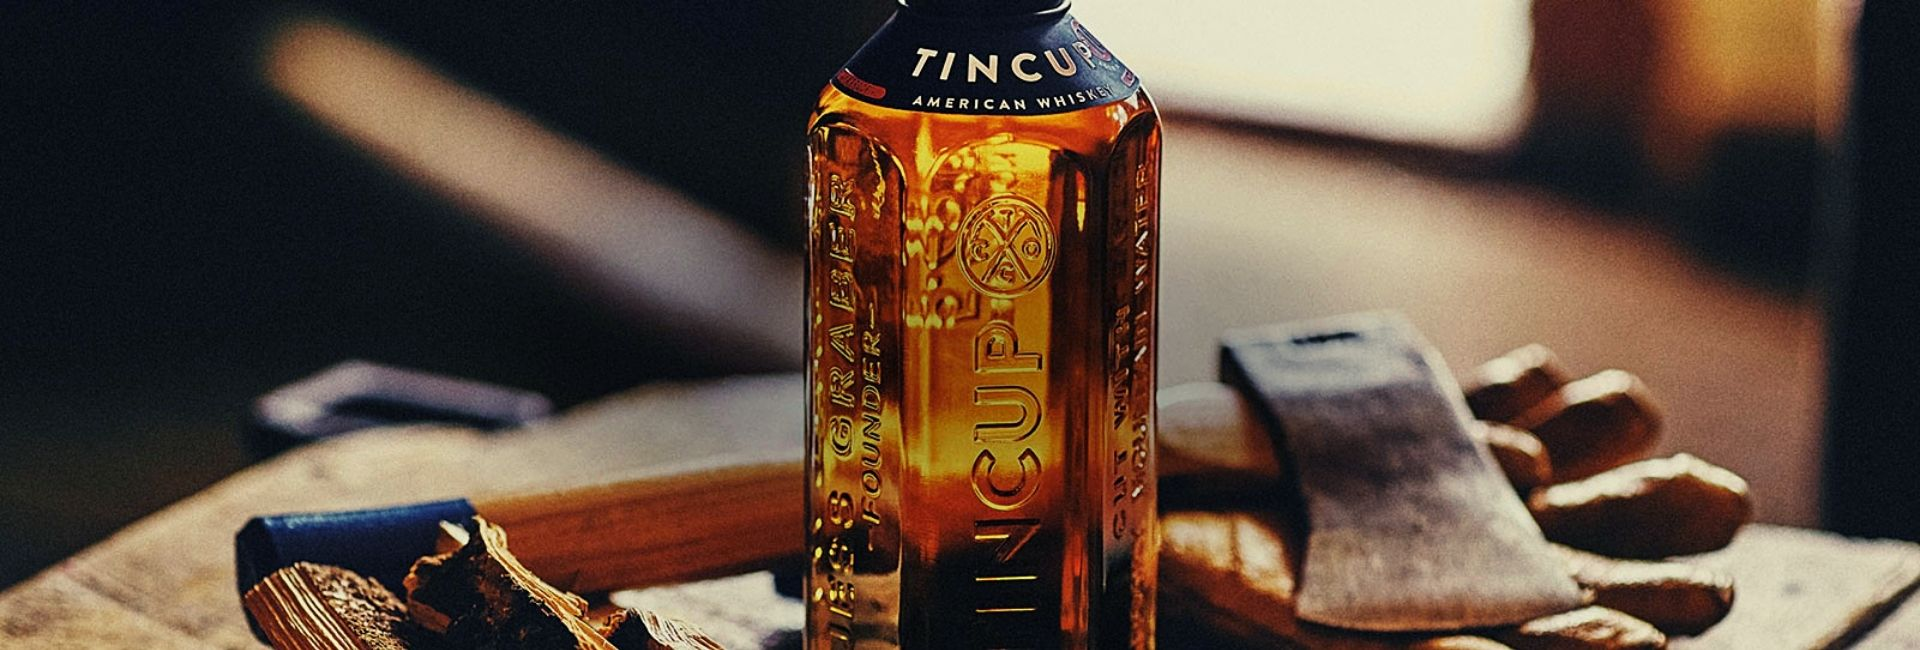 Tincup American Whiskey Review